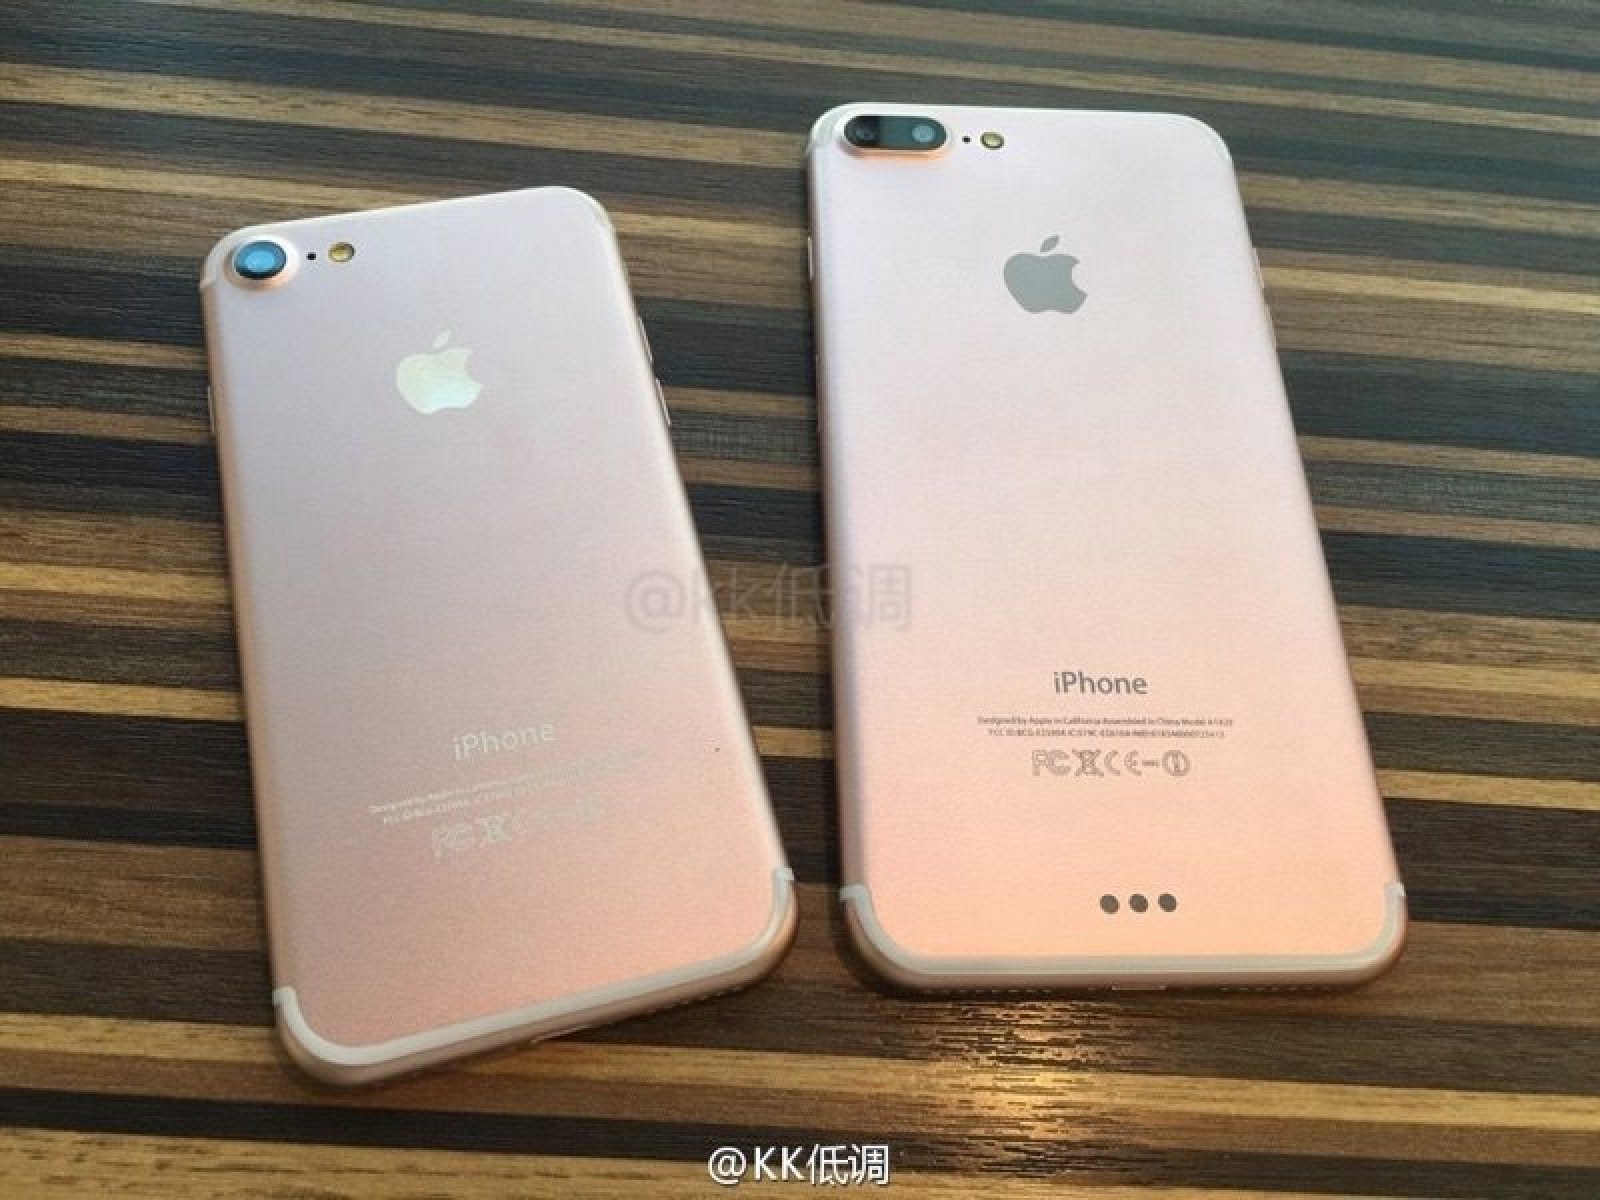 apple hikes order volumes for iphone 7 parts in wake of samsung recall mac rumors. Black Bedroom Furniture Sets. Home Design Ideas